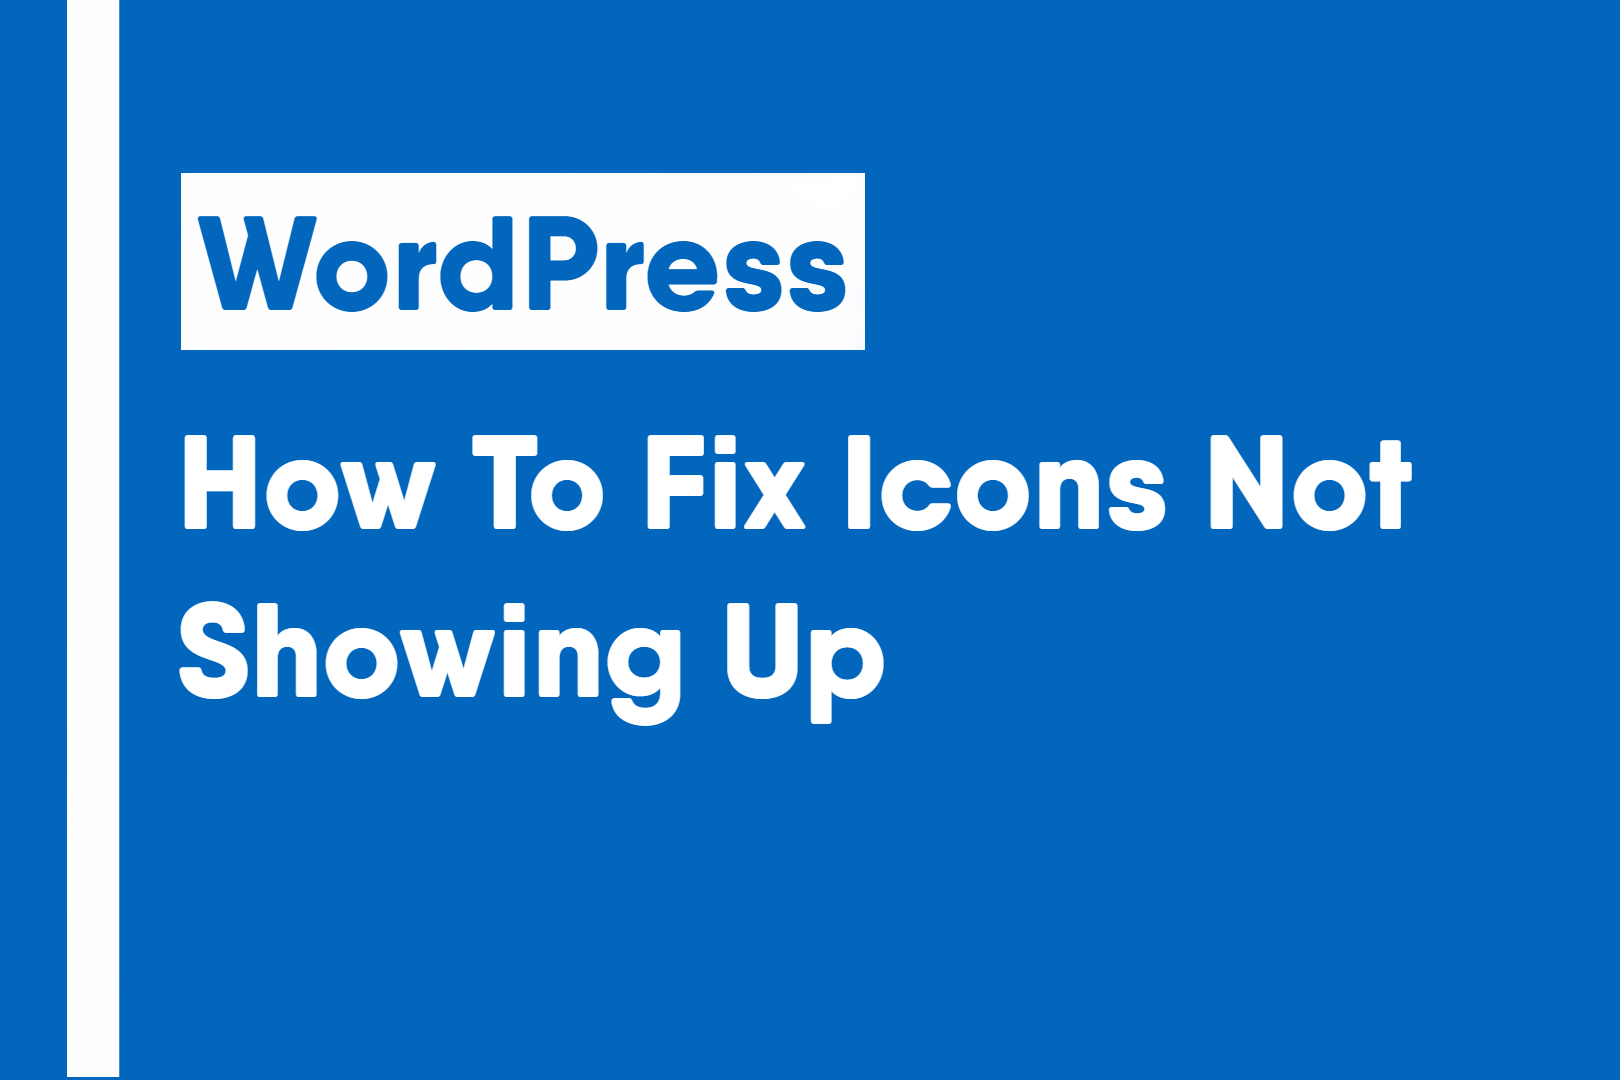 how to fix icons not showing up